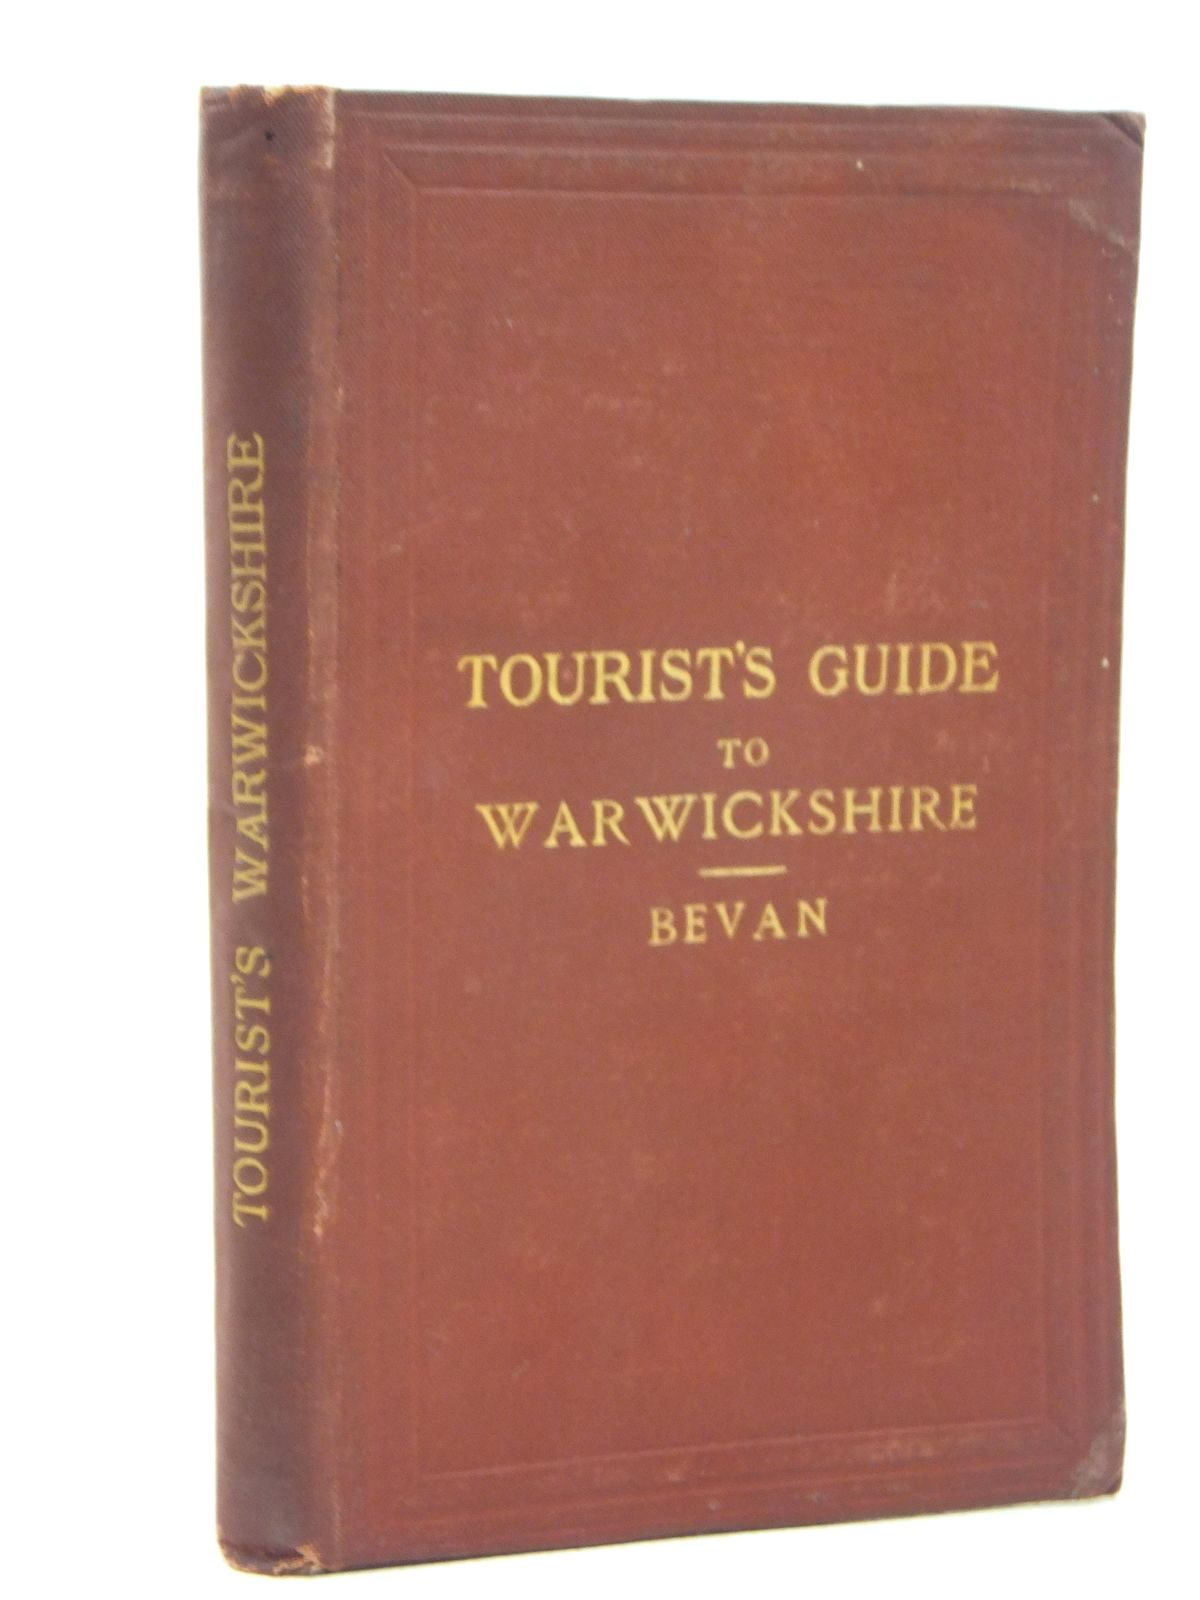 Photo of TOURIST'S GUIDE TO WARWICKSHIRE written by Bevan, G. Phillips published by Edward Stanford (STOCK CODE: 1609475)  for sale by Stella & Rose's Books